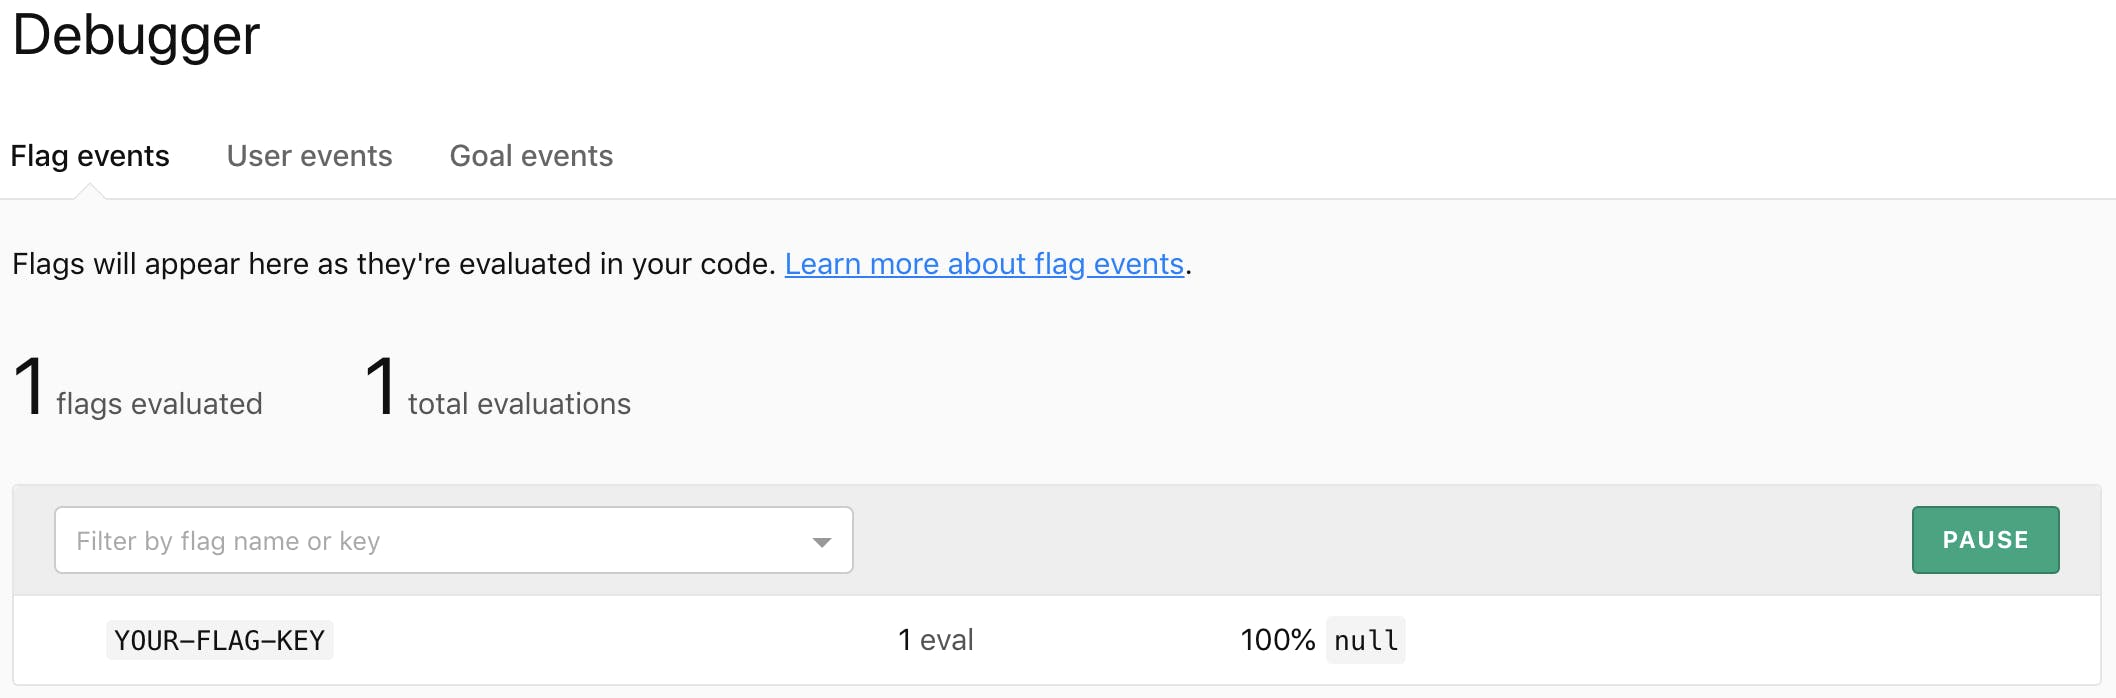 Debugger results showing the flag was evaluated